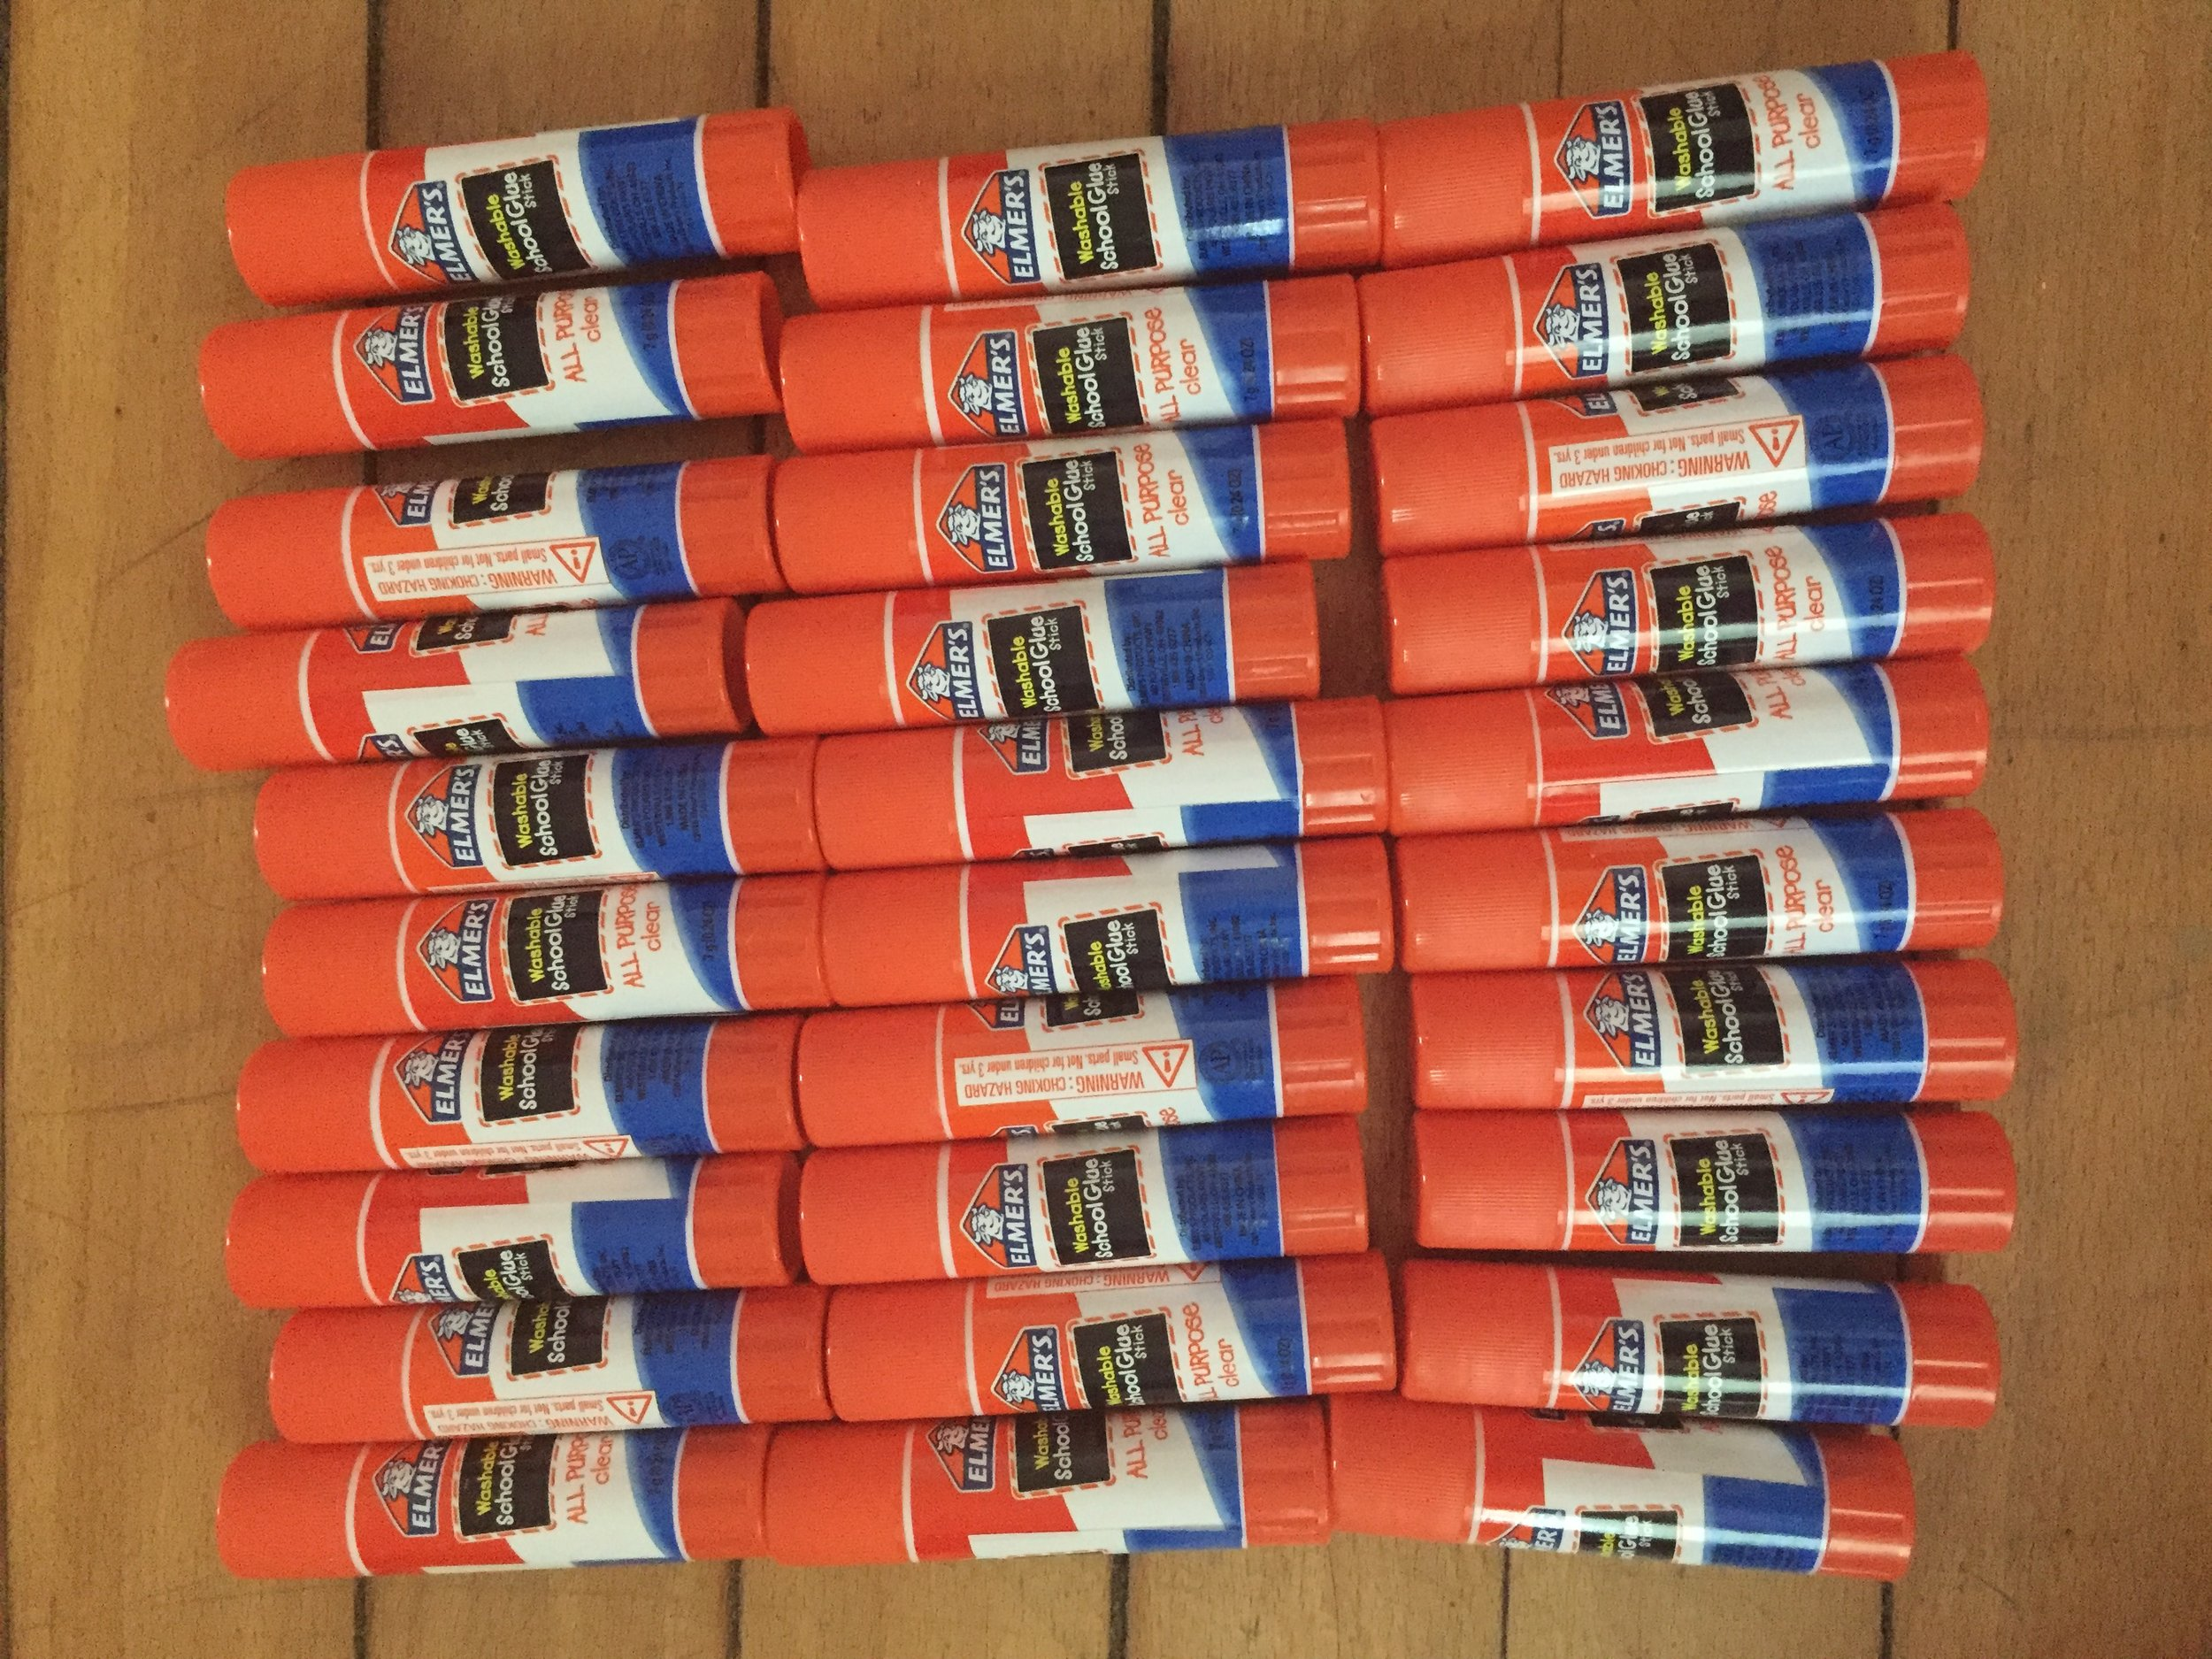 98 Glue Sticks  - Donated by generous individuals at UM and Scarlett Middle School